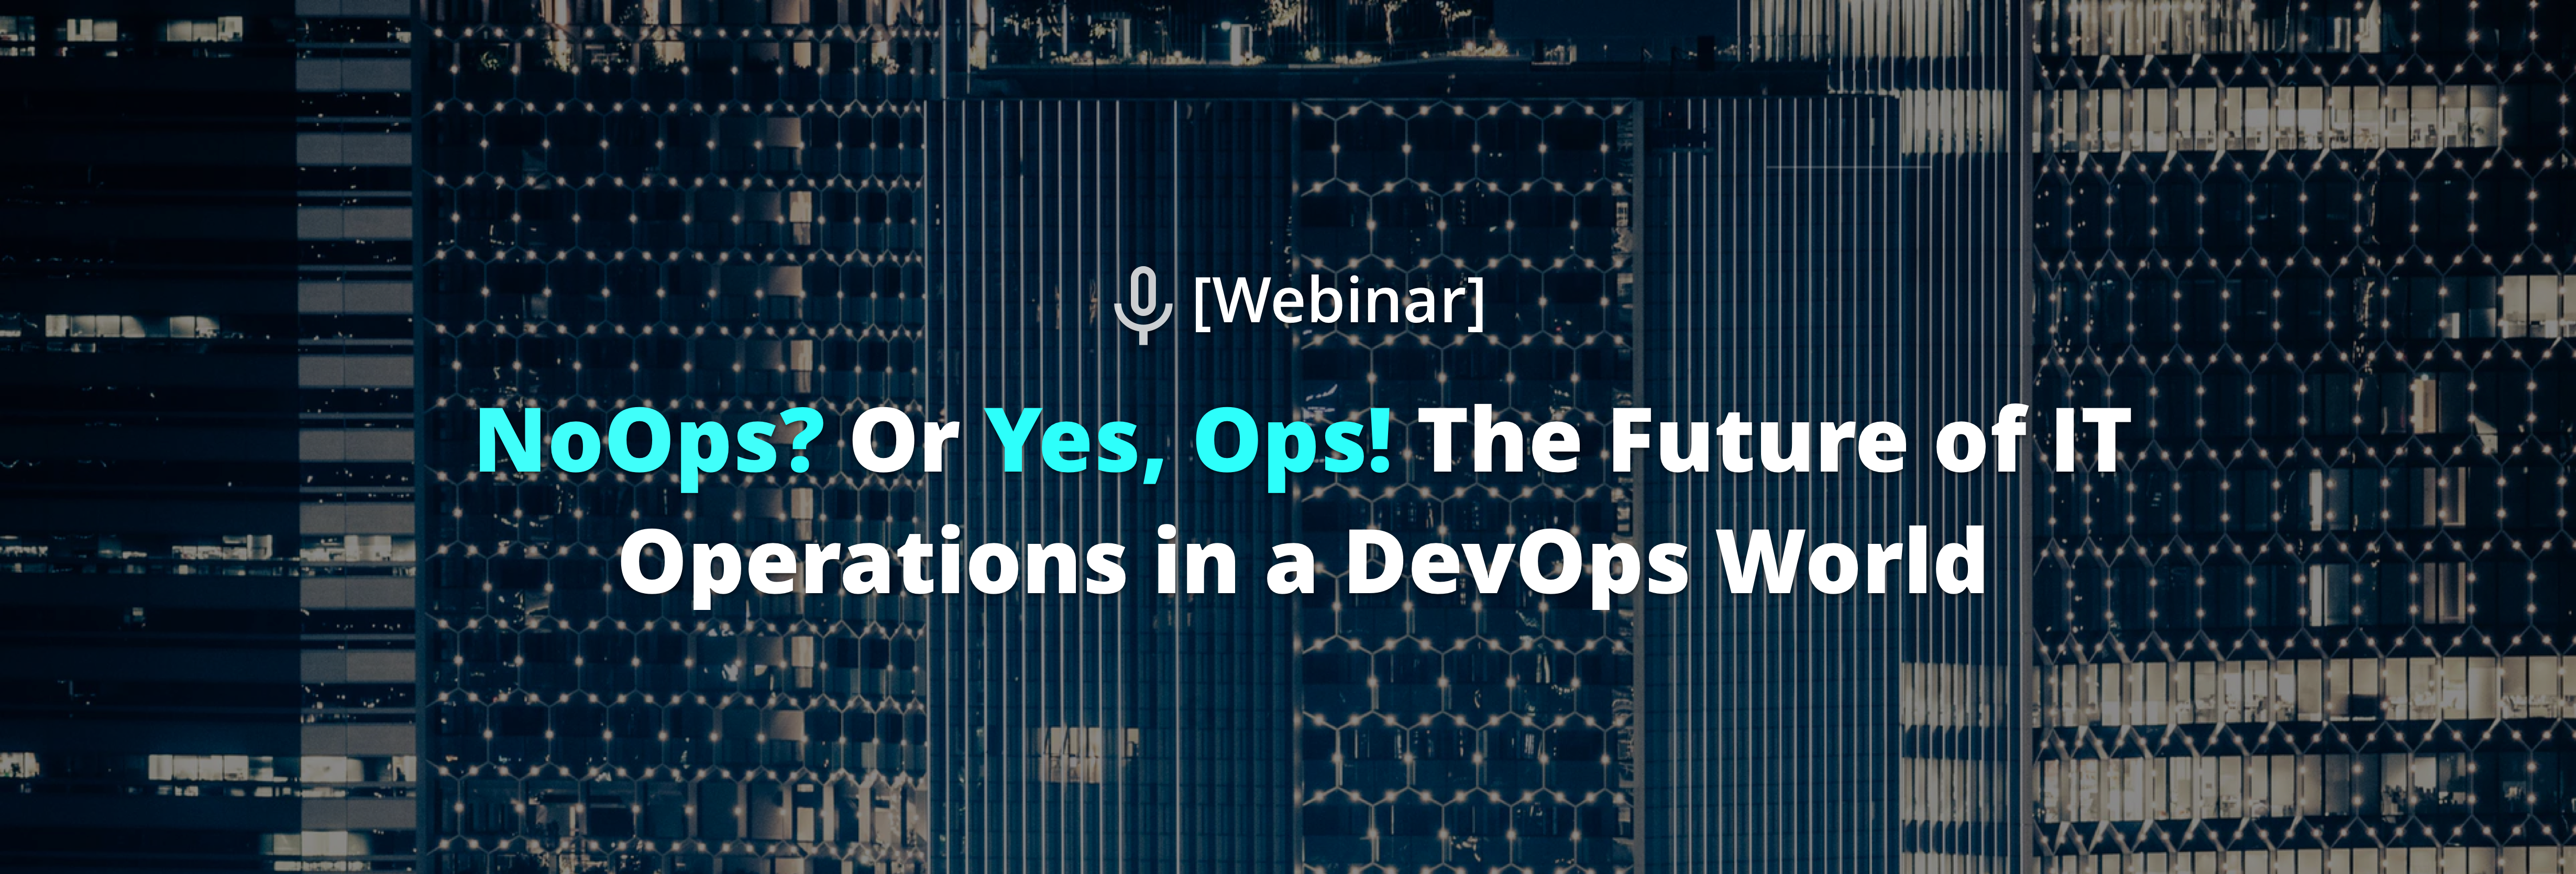 NoOps? Or Yes, Ops! The Future of IT Operations in a DevOps World